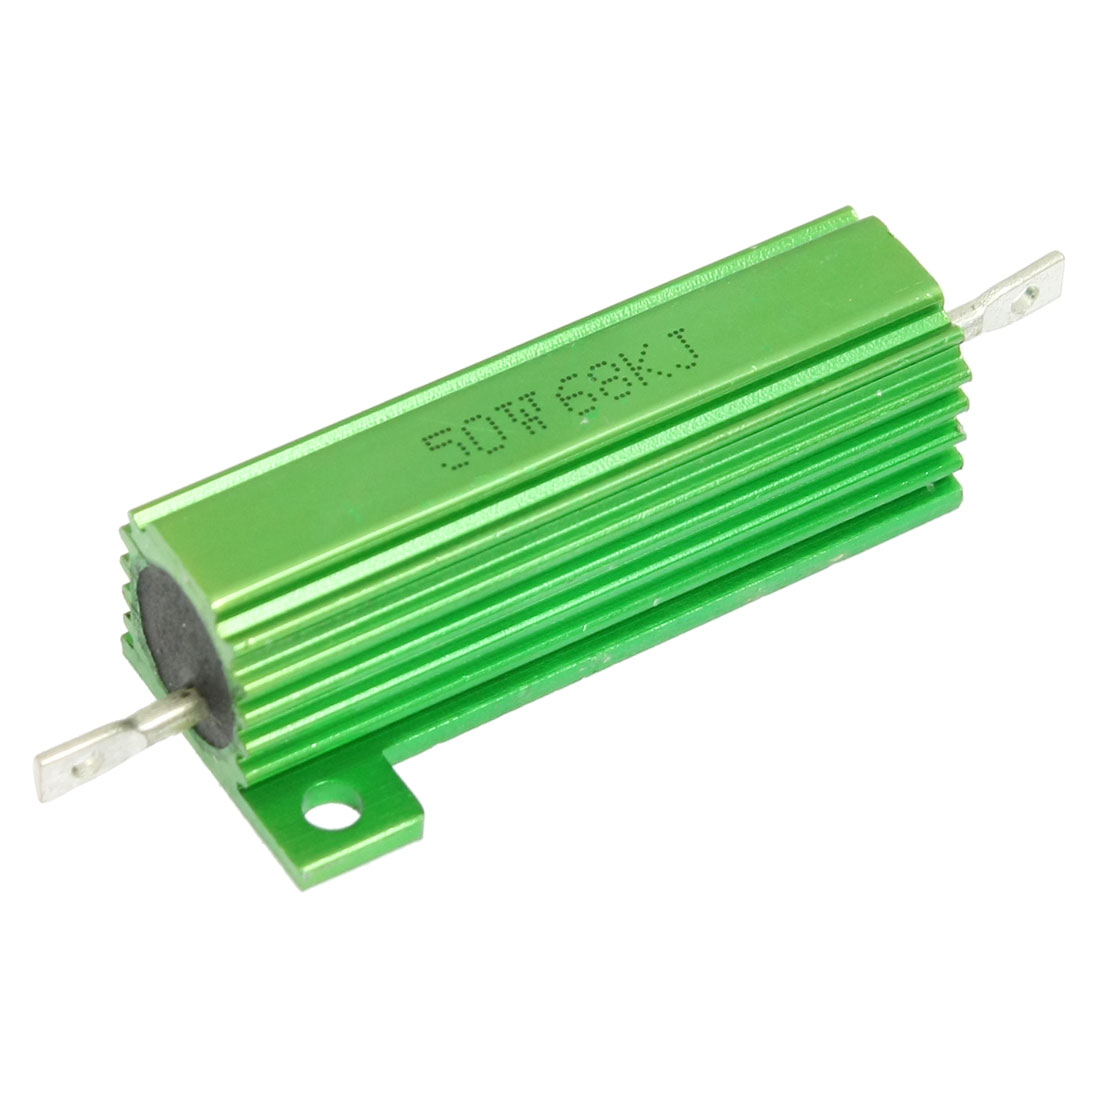 Green 50 Watt 68K Ohm 5% Aluminum Shell Wire Wound Resistor